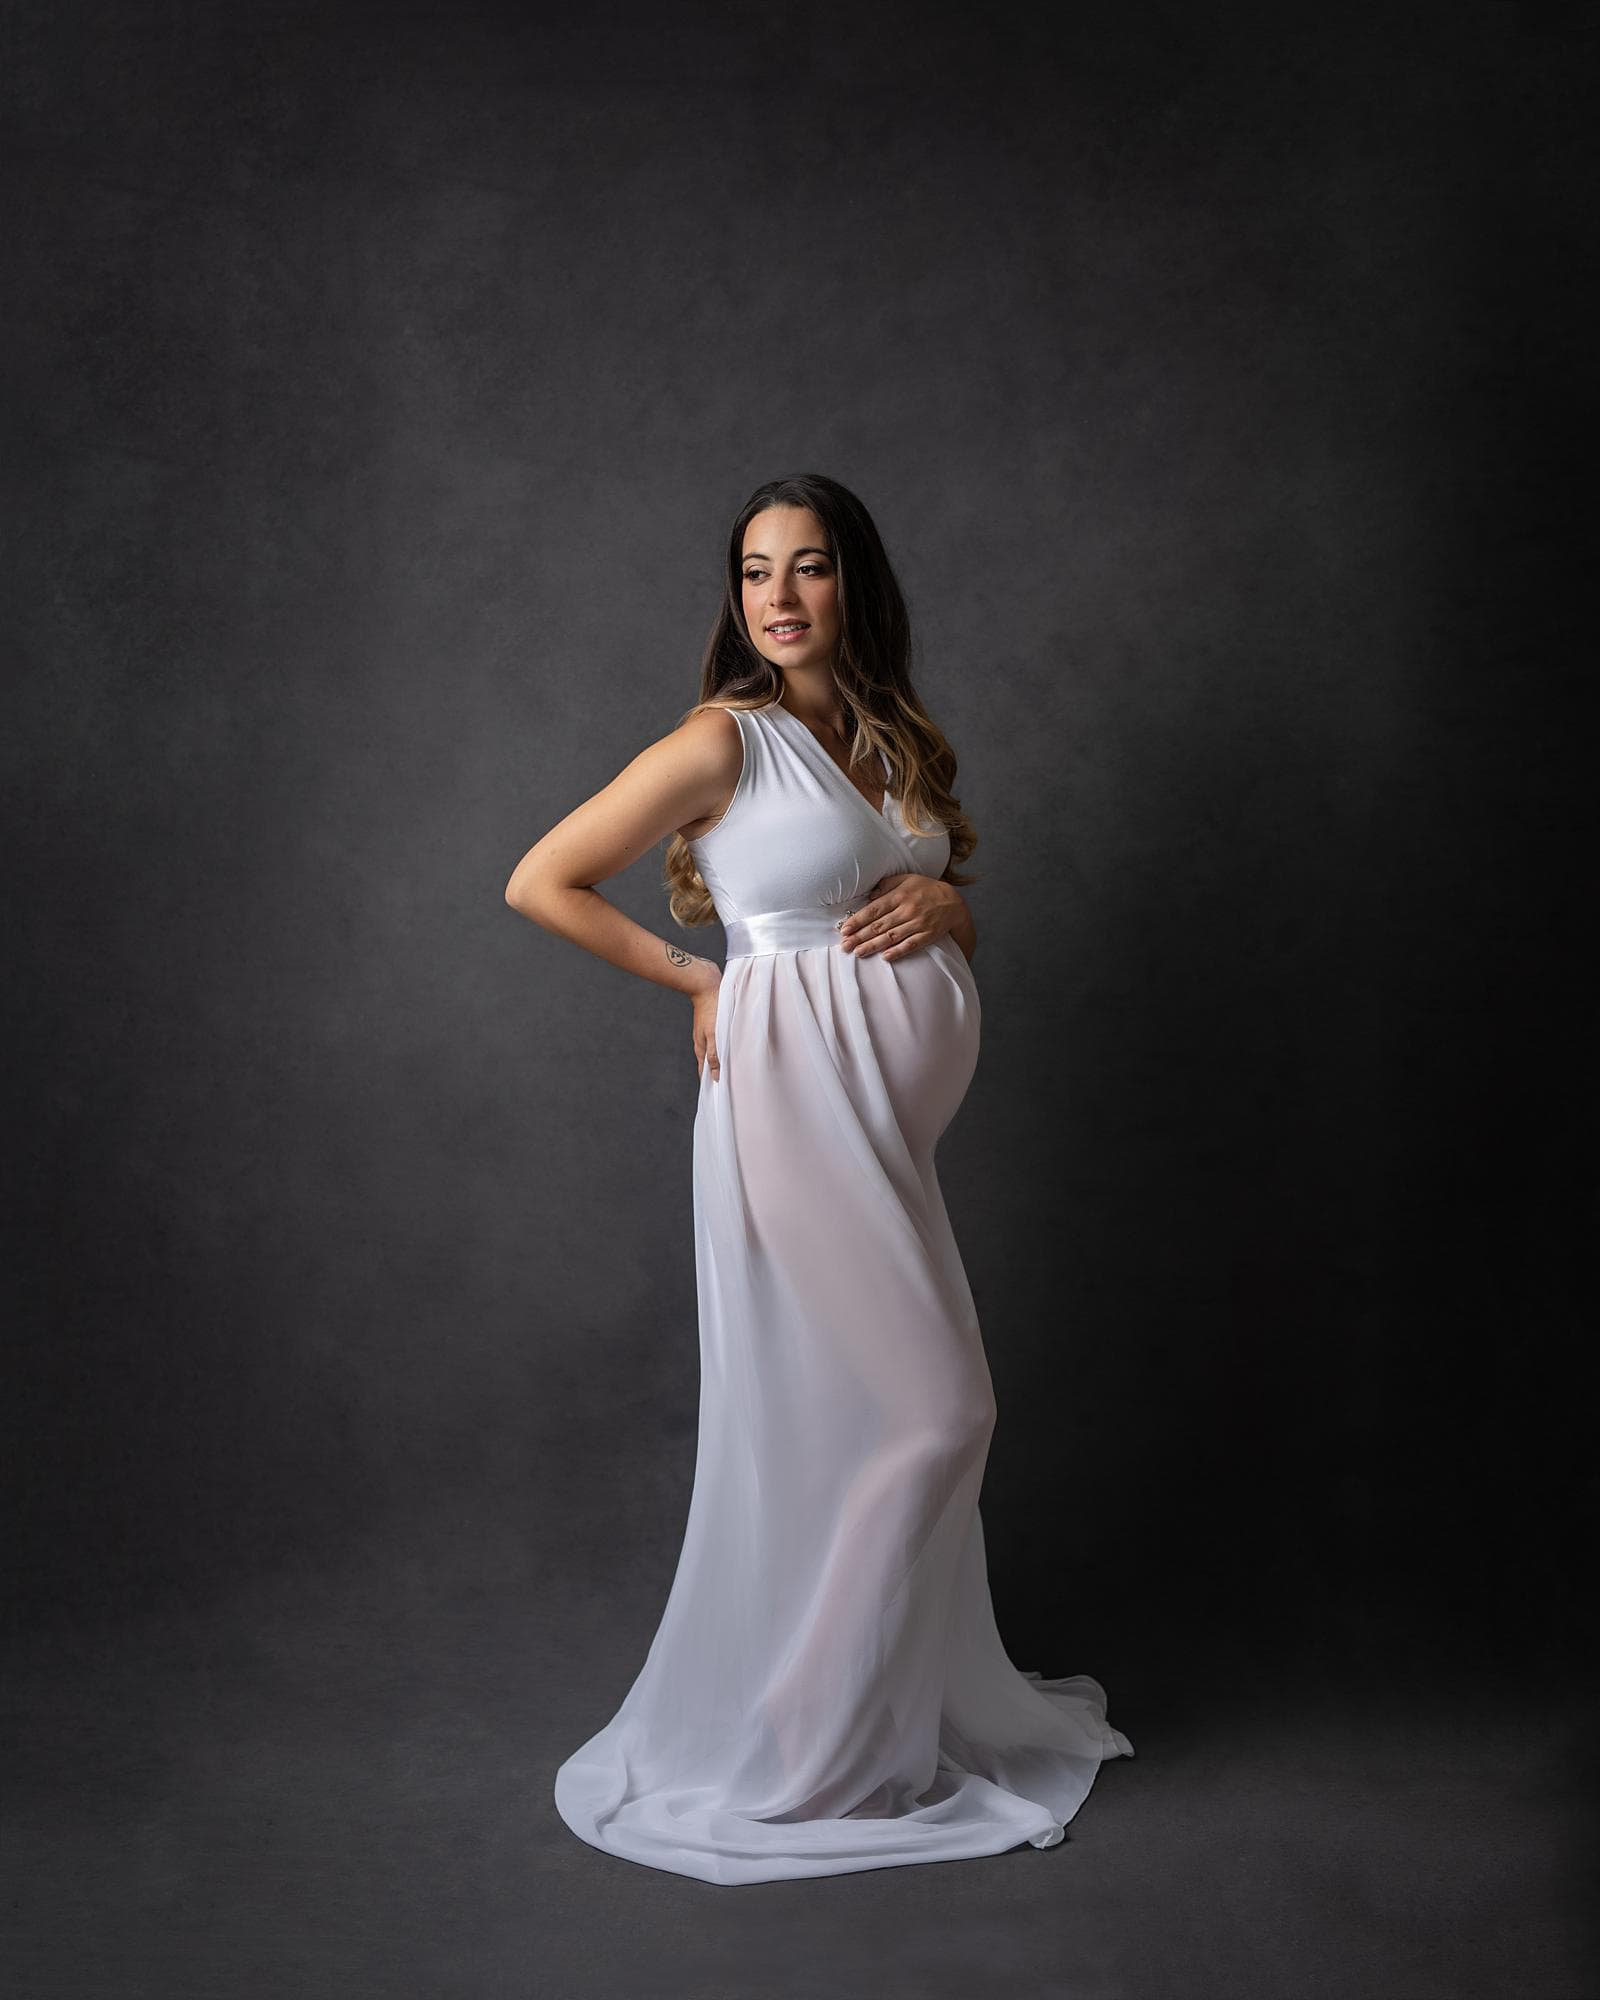 Pregnant woman posing in sheer white dress for a maternity photoshoot in Suffolk